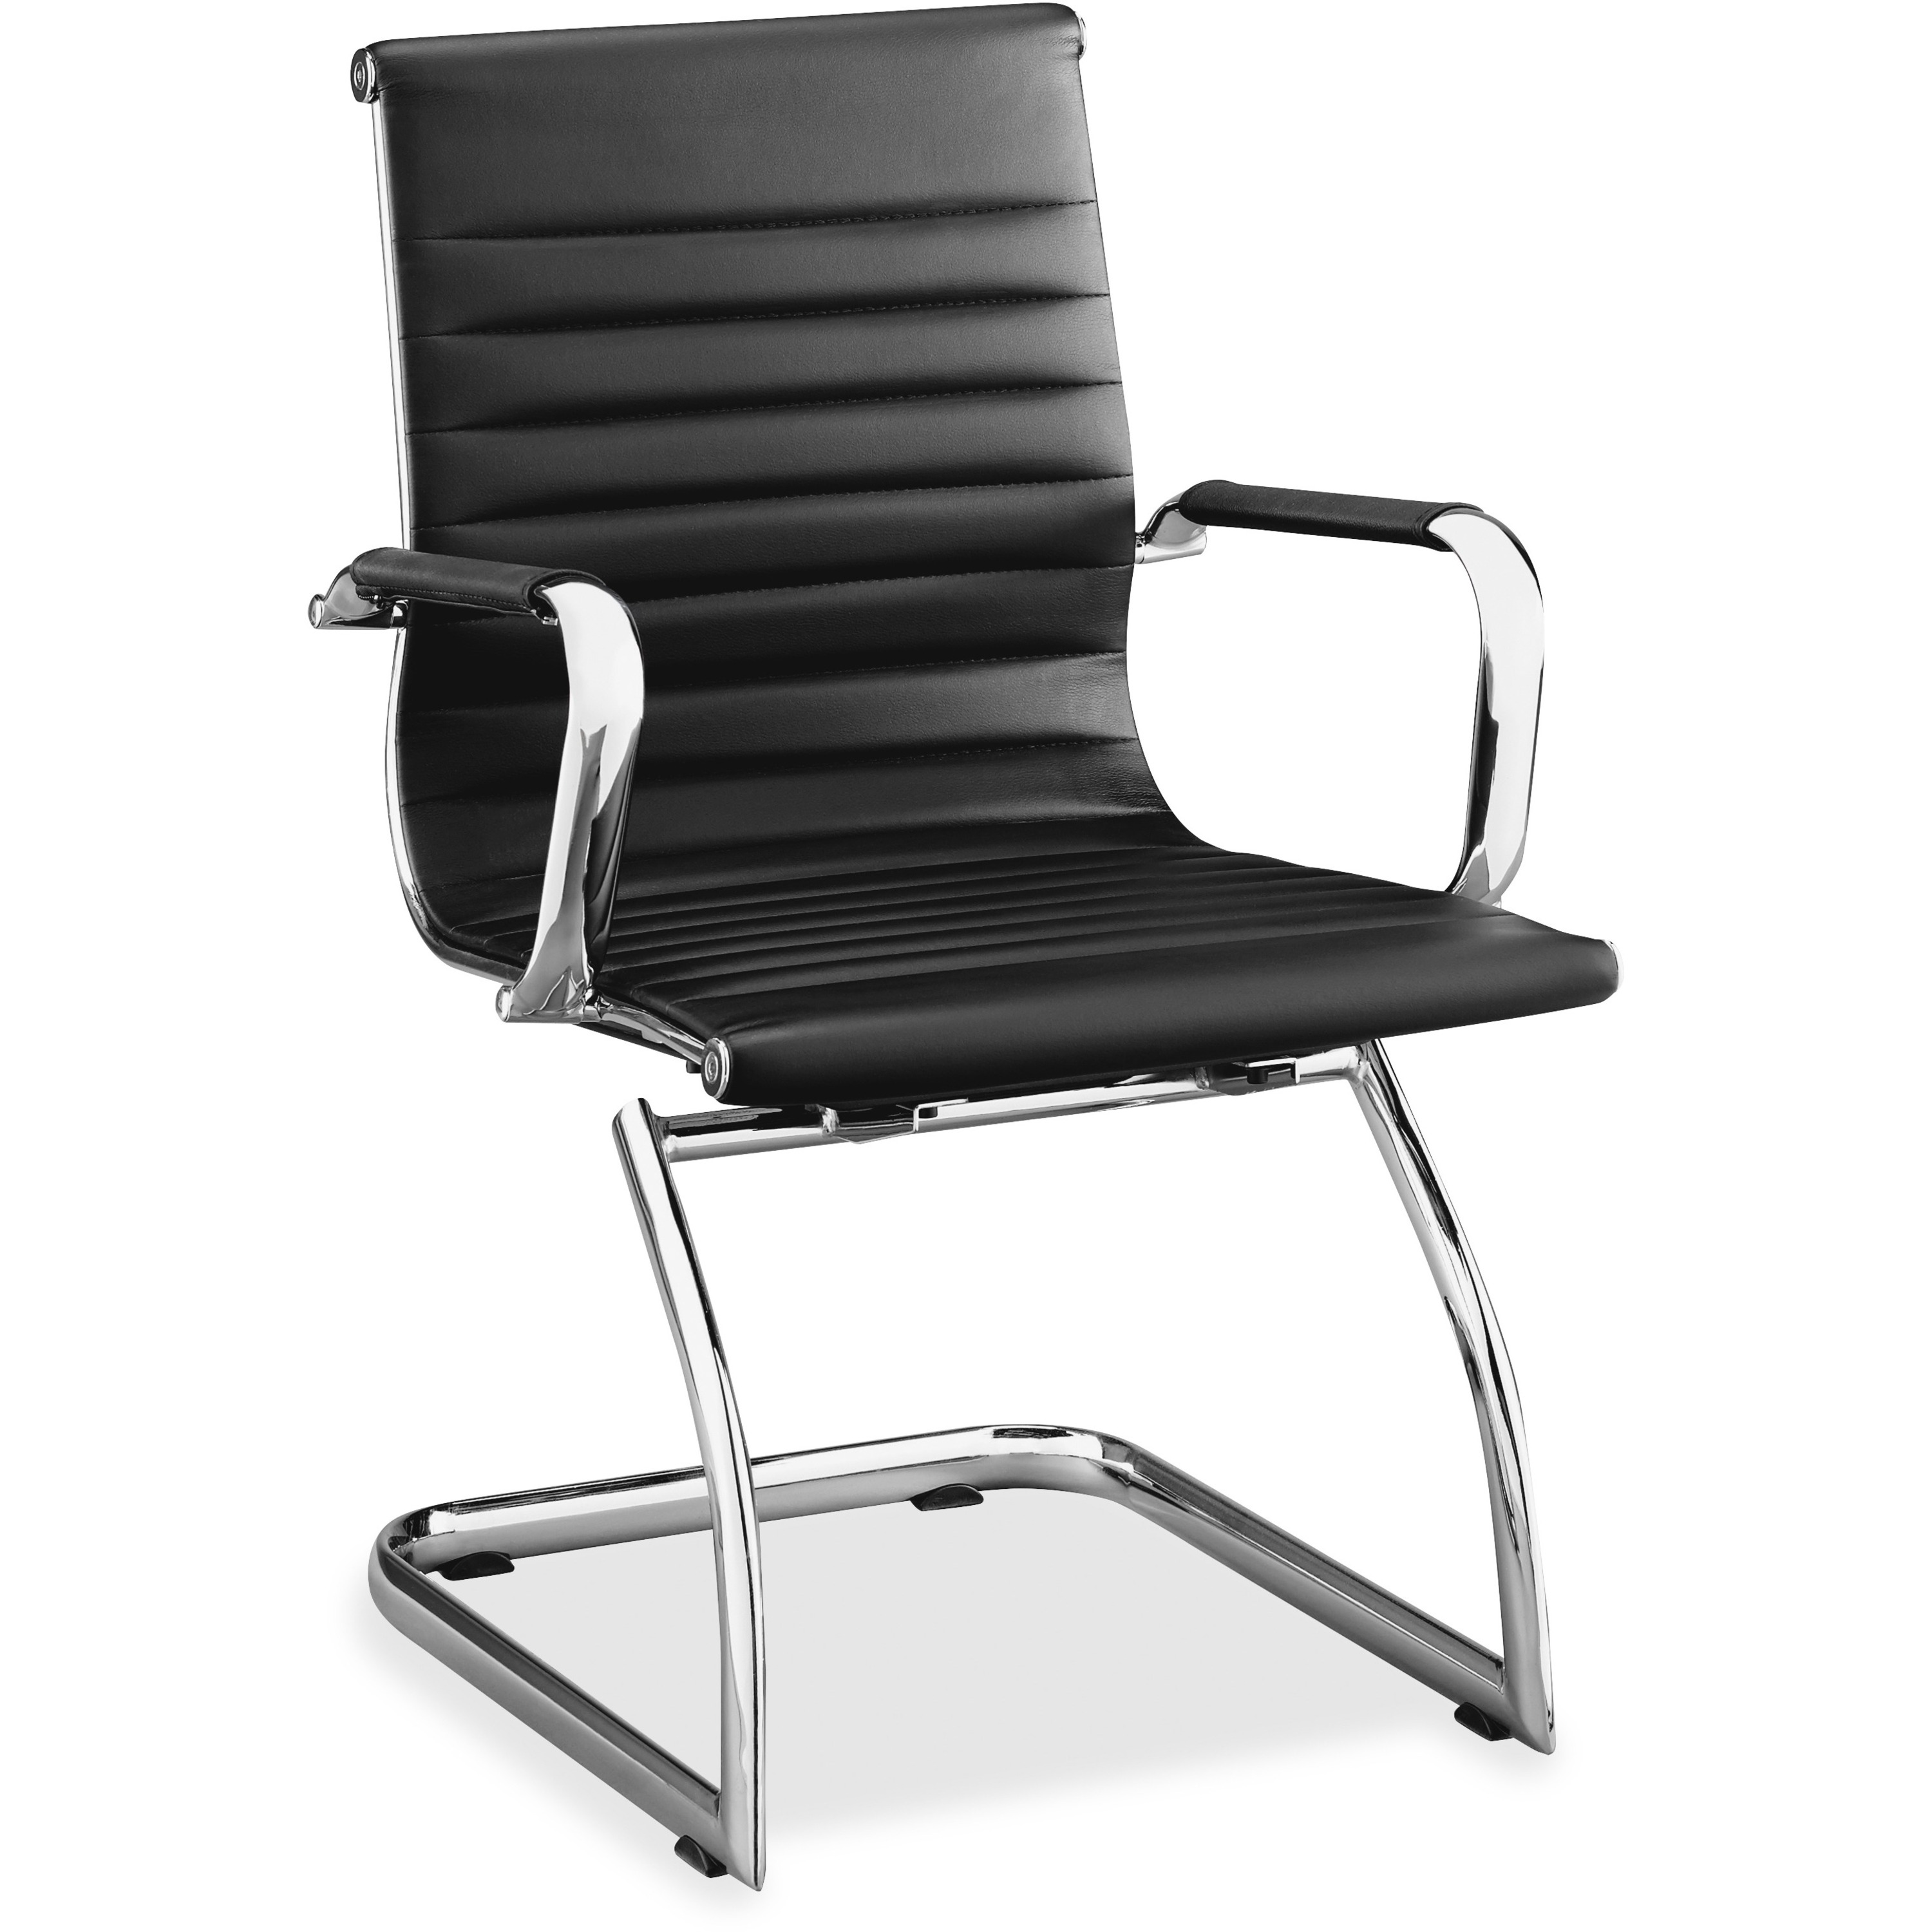 Llr 59539 Lorell Modern Chair Mid Back Leather Guest Chairs Lorell Furniture